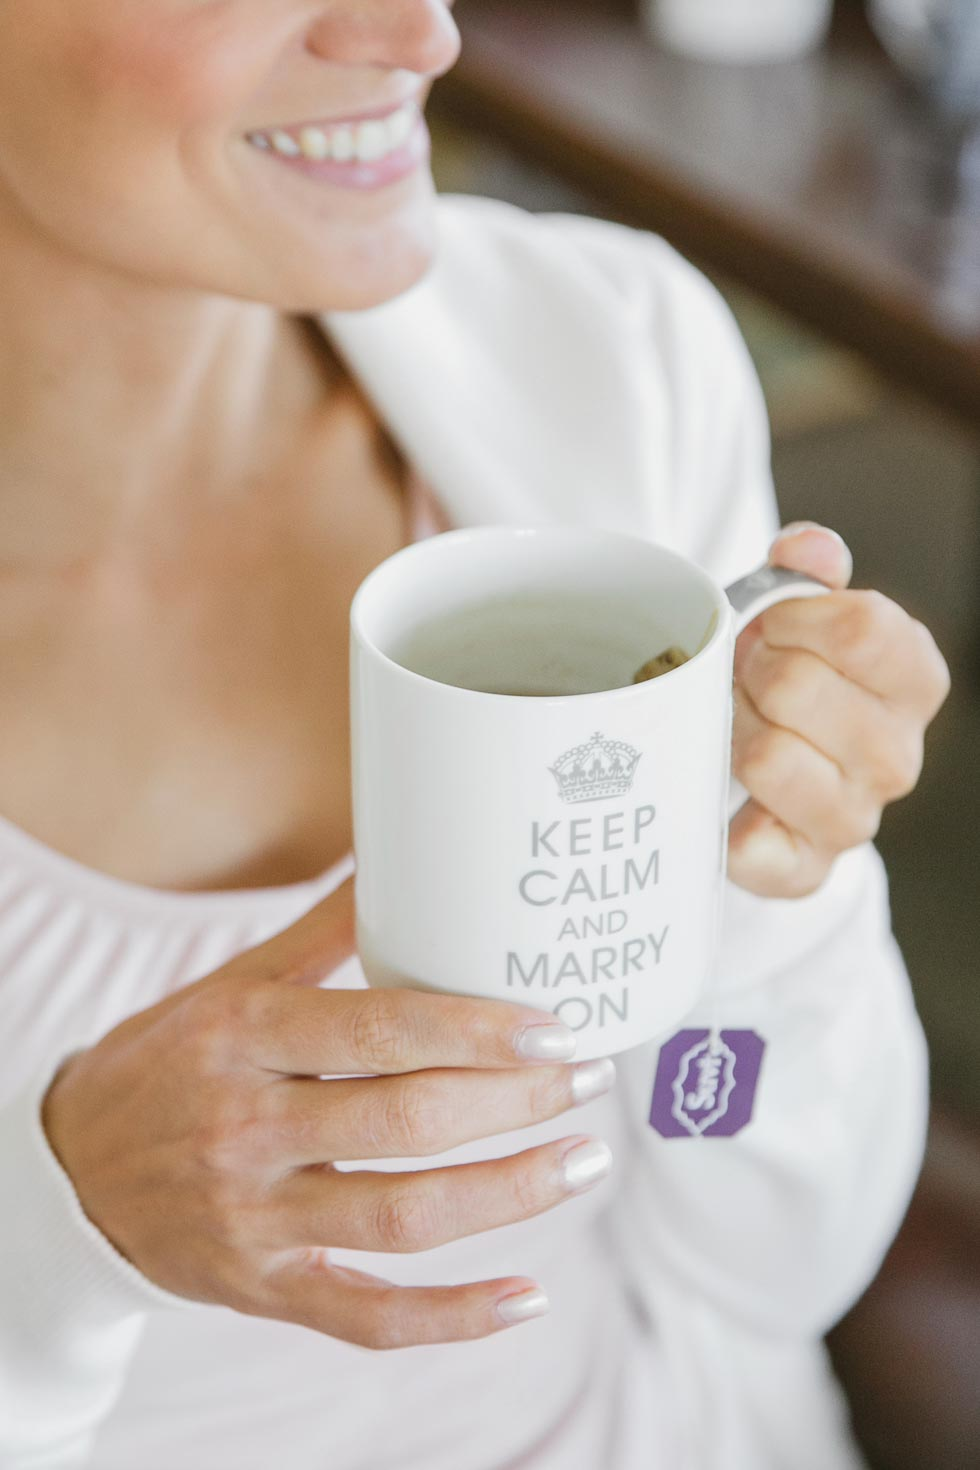 Braut mit Tasse Keep calm and marry on